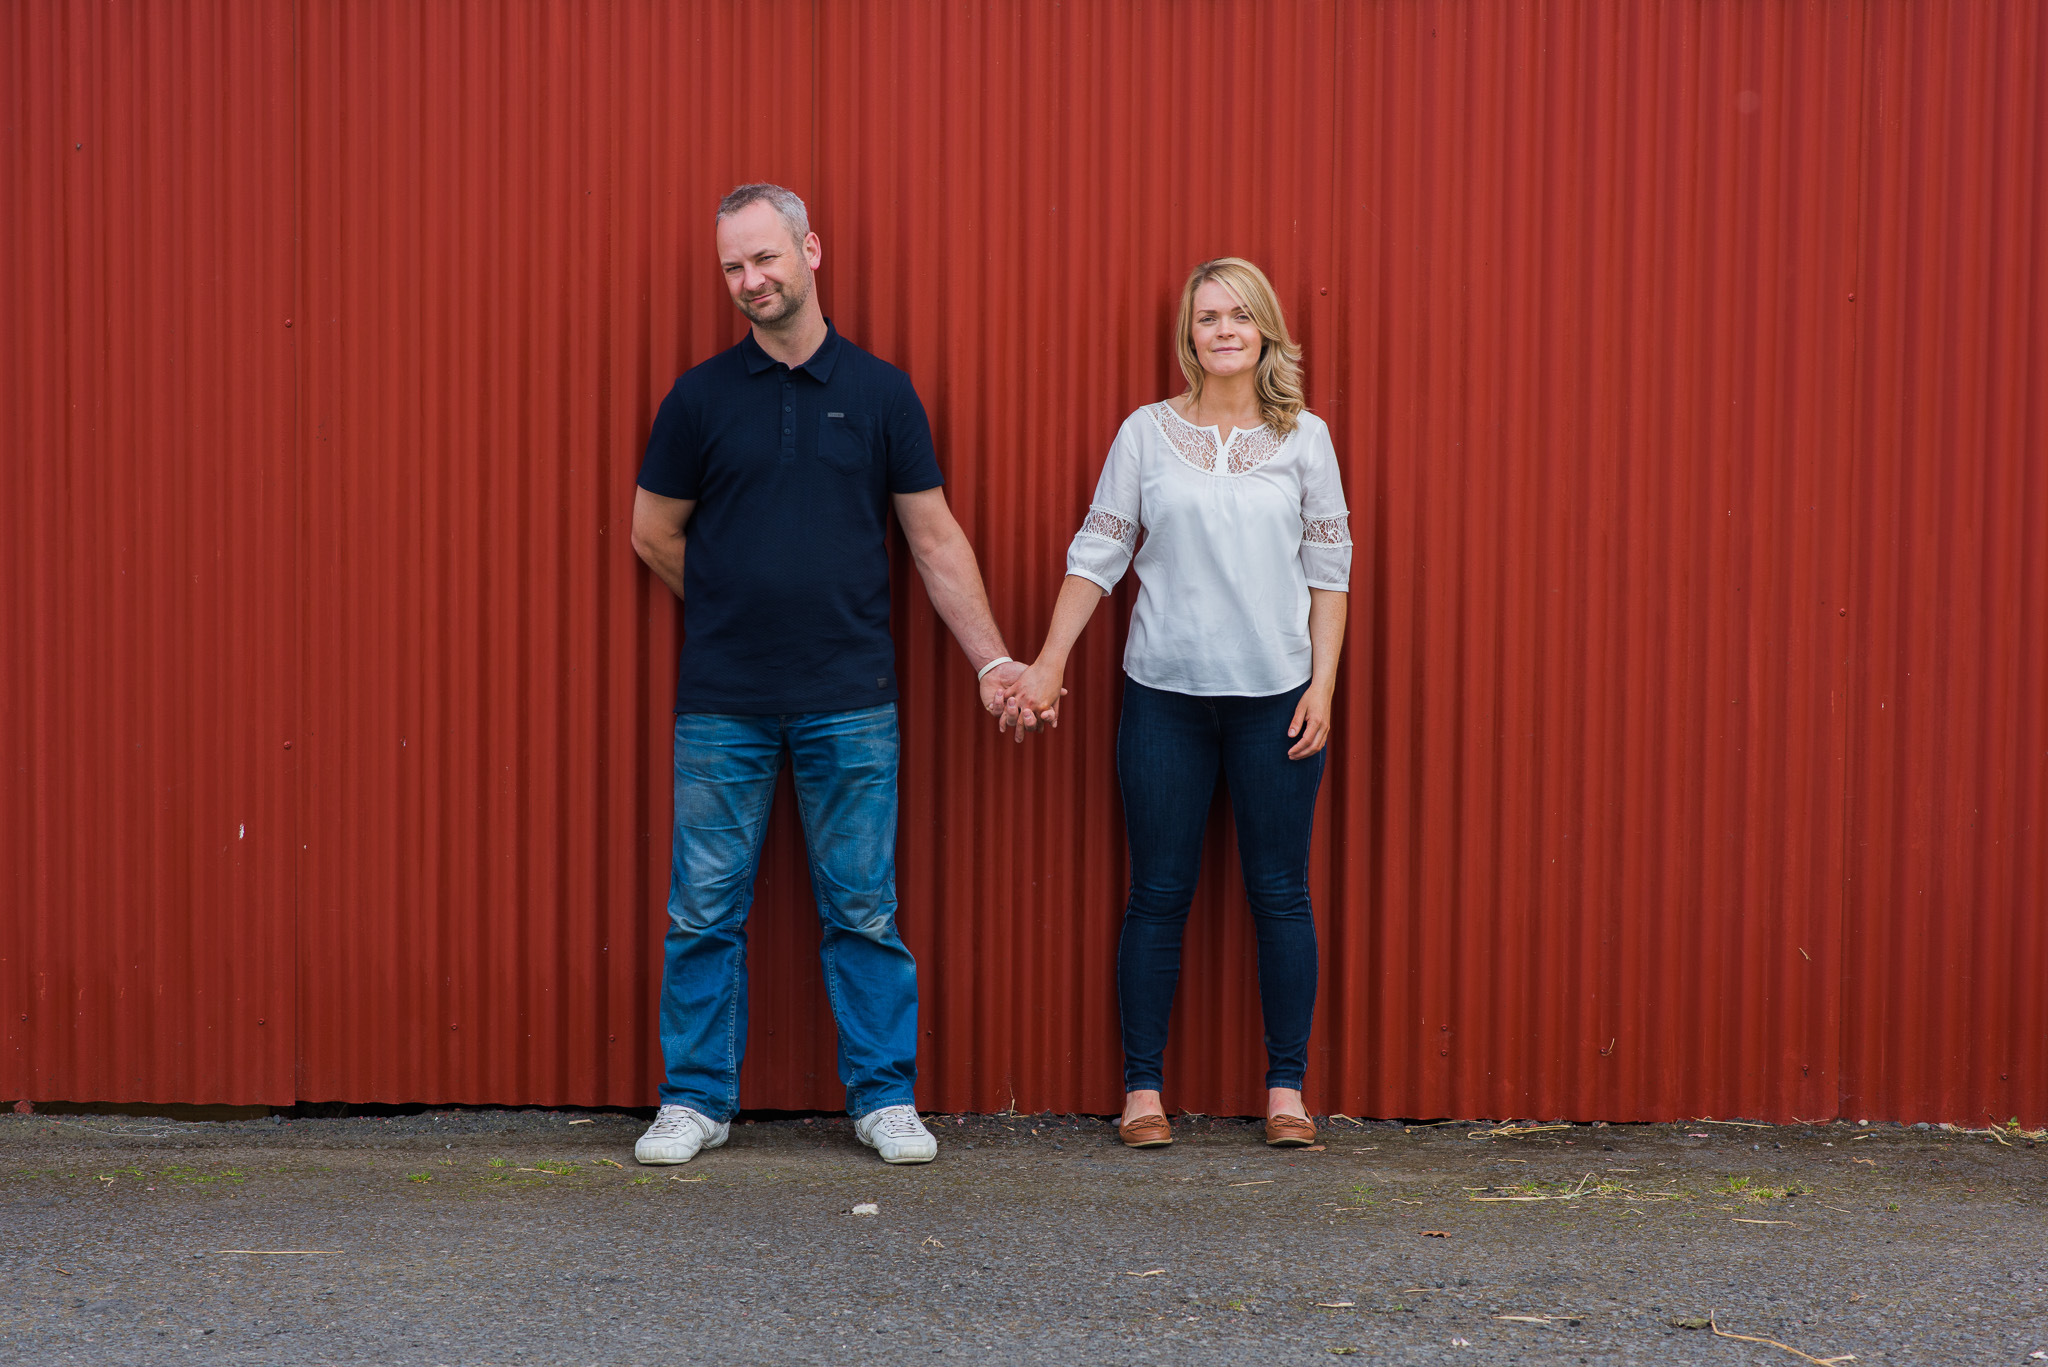 Dalduff Farm Barn Engagement